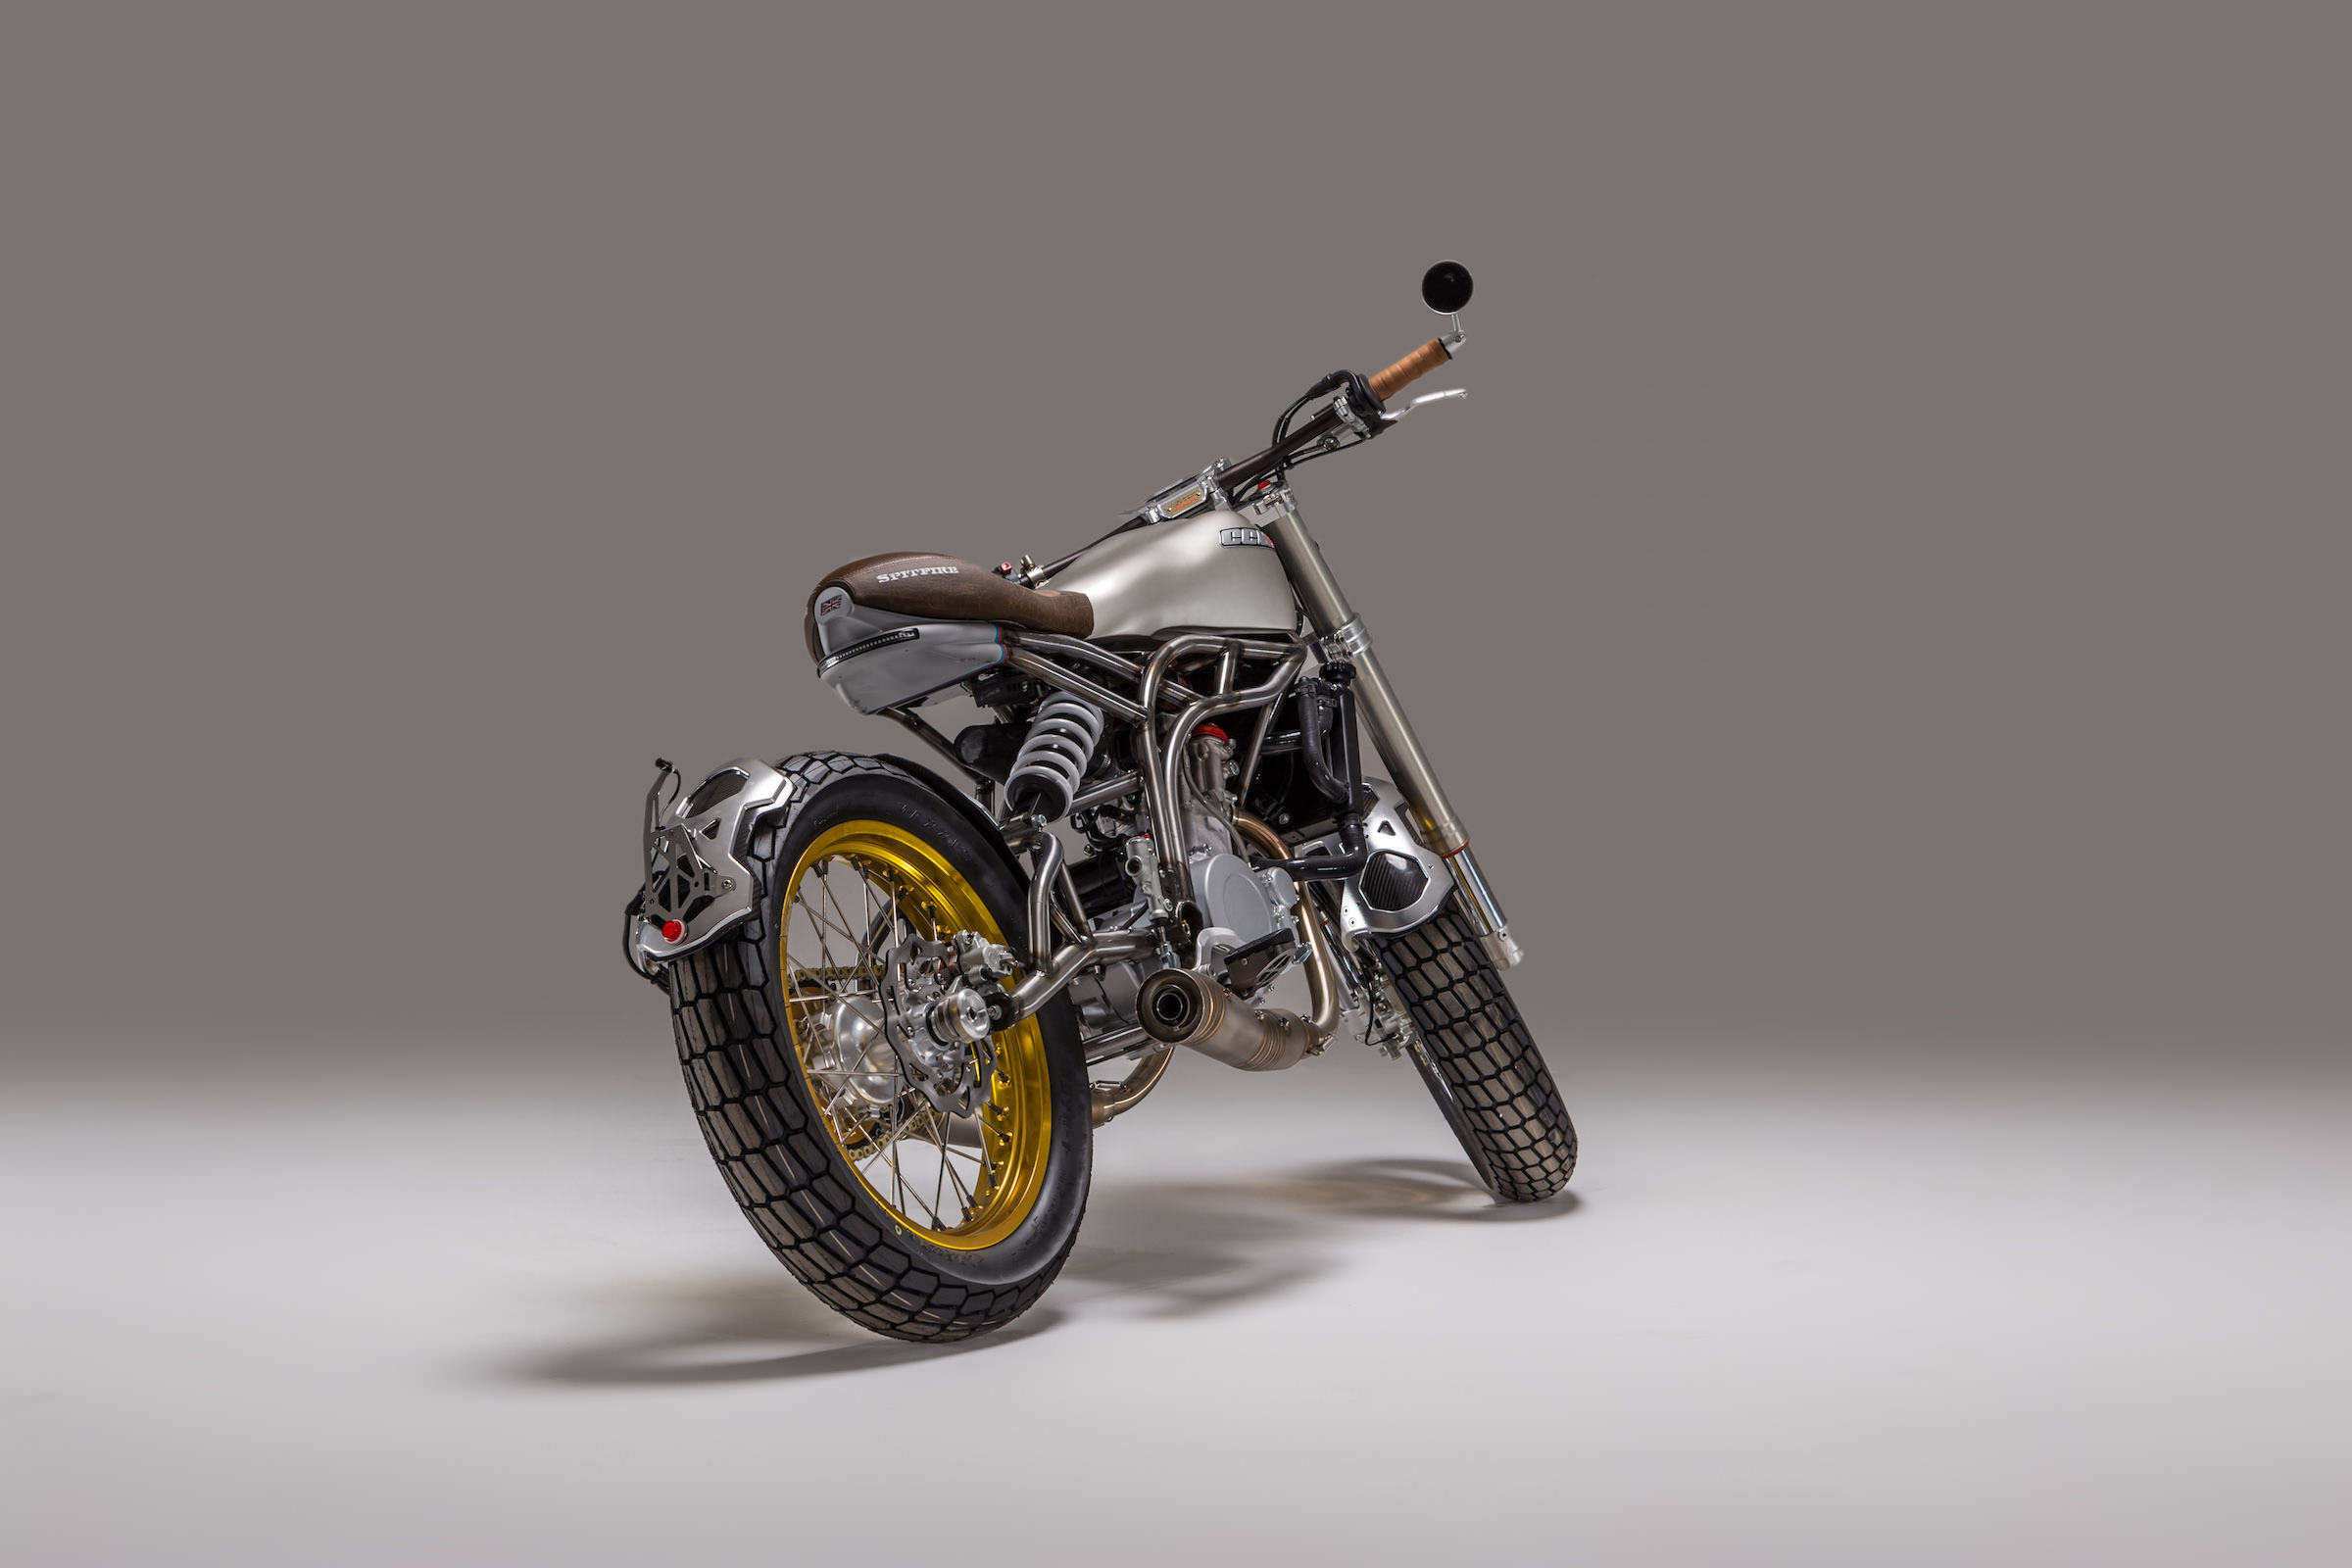 The CCM Spitfire - Possibly The World's Fastest Selling Hand